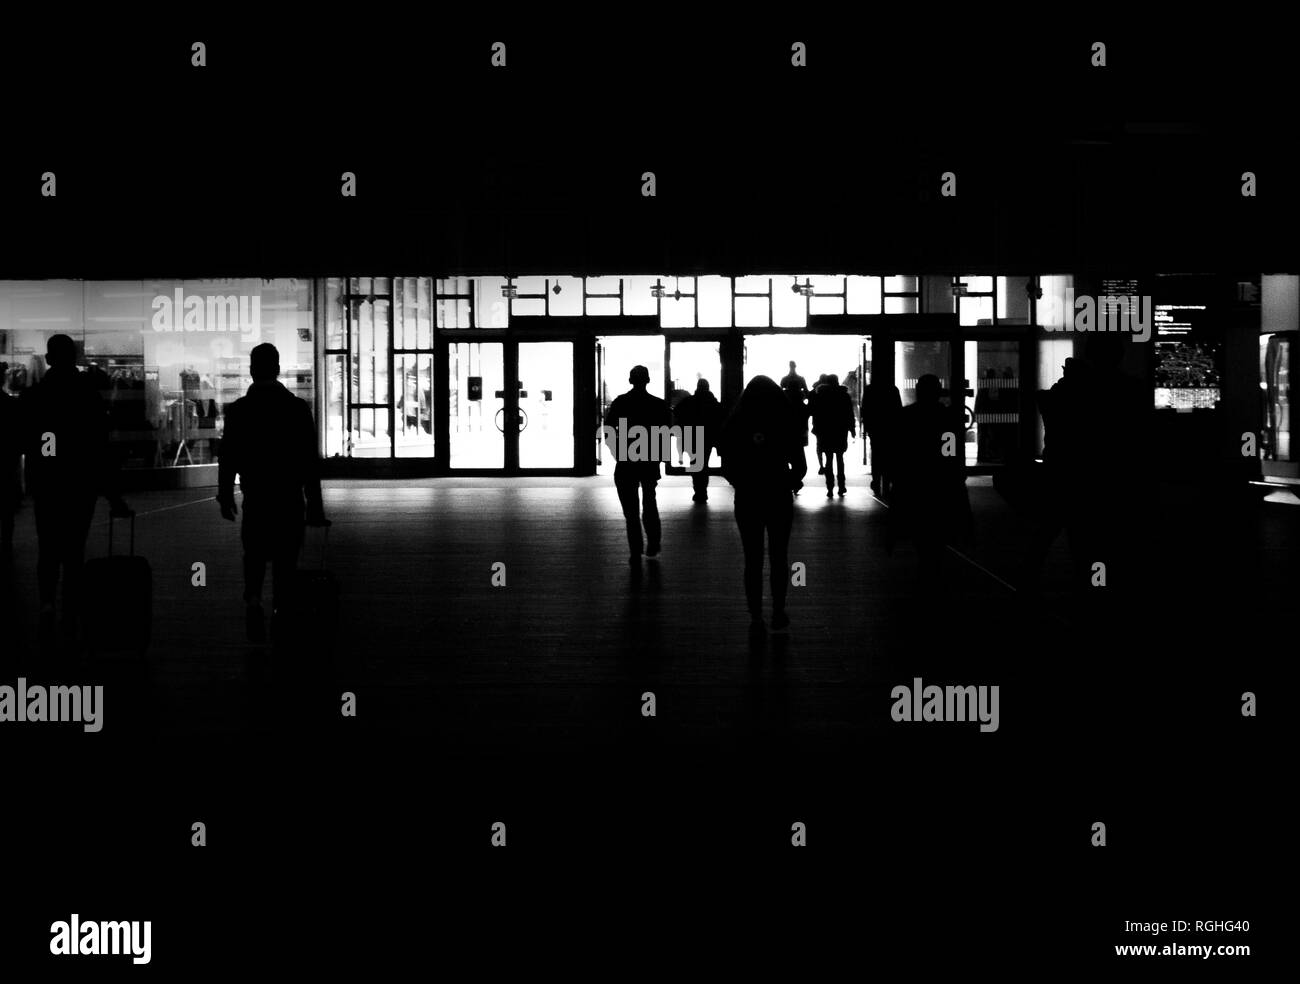 birmingham new street train station. silhouettes of people walking out of the train station. It creates a sense of doorways to heaven - Stock Image